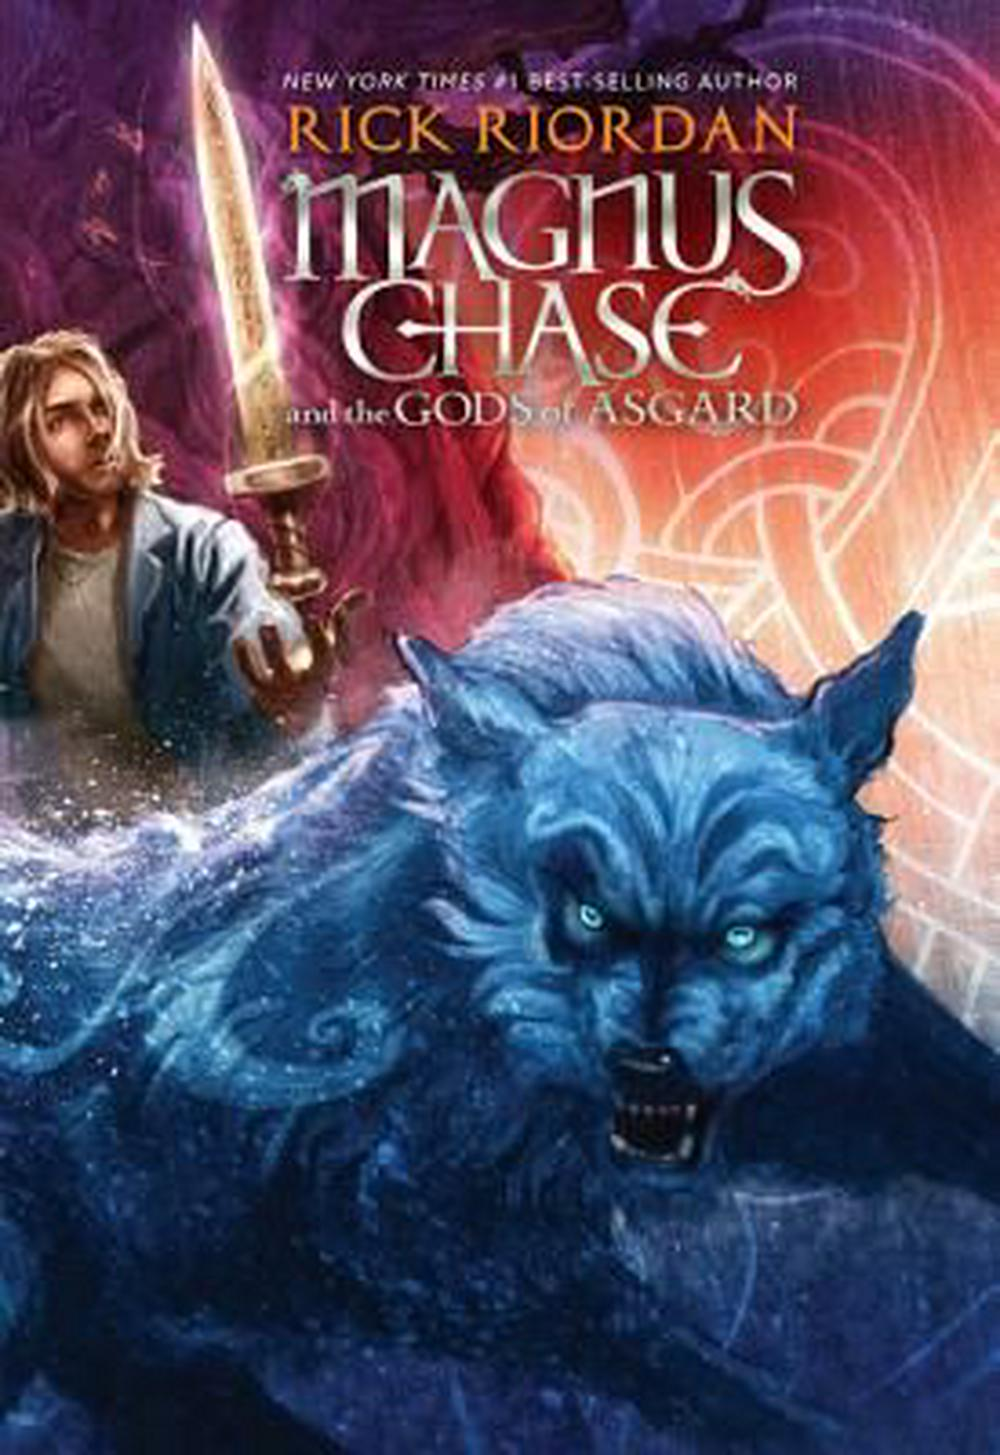 Magnus Chase and the Gods of Asgard Hardcover Boxed SetMagnus Chase and the Gods of Asgard by Rick Riordan, ISBN: 9781484767375